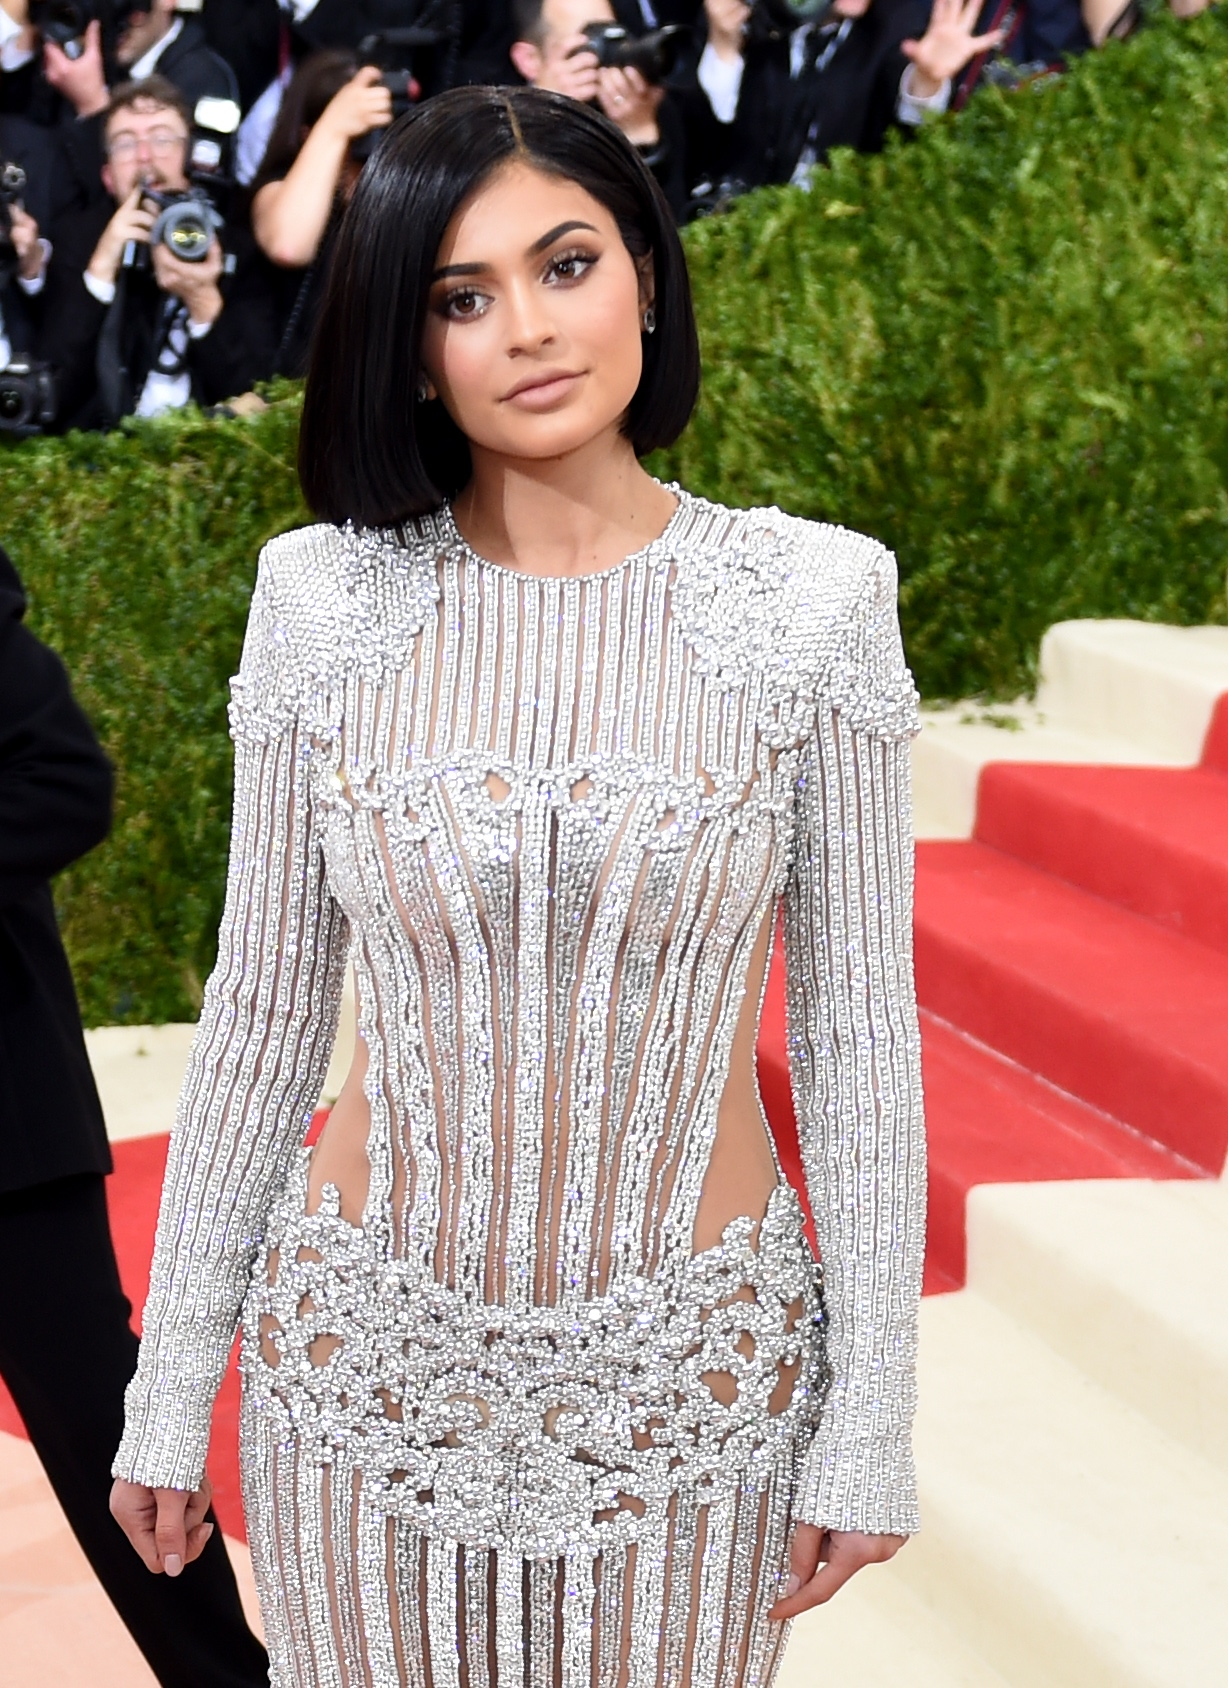 Is Kylie Jenner working on a skincare line?